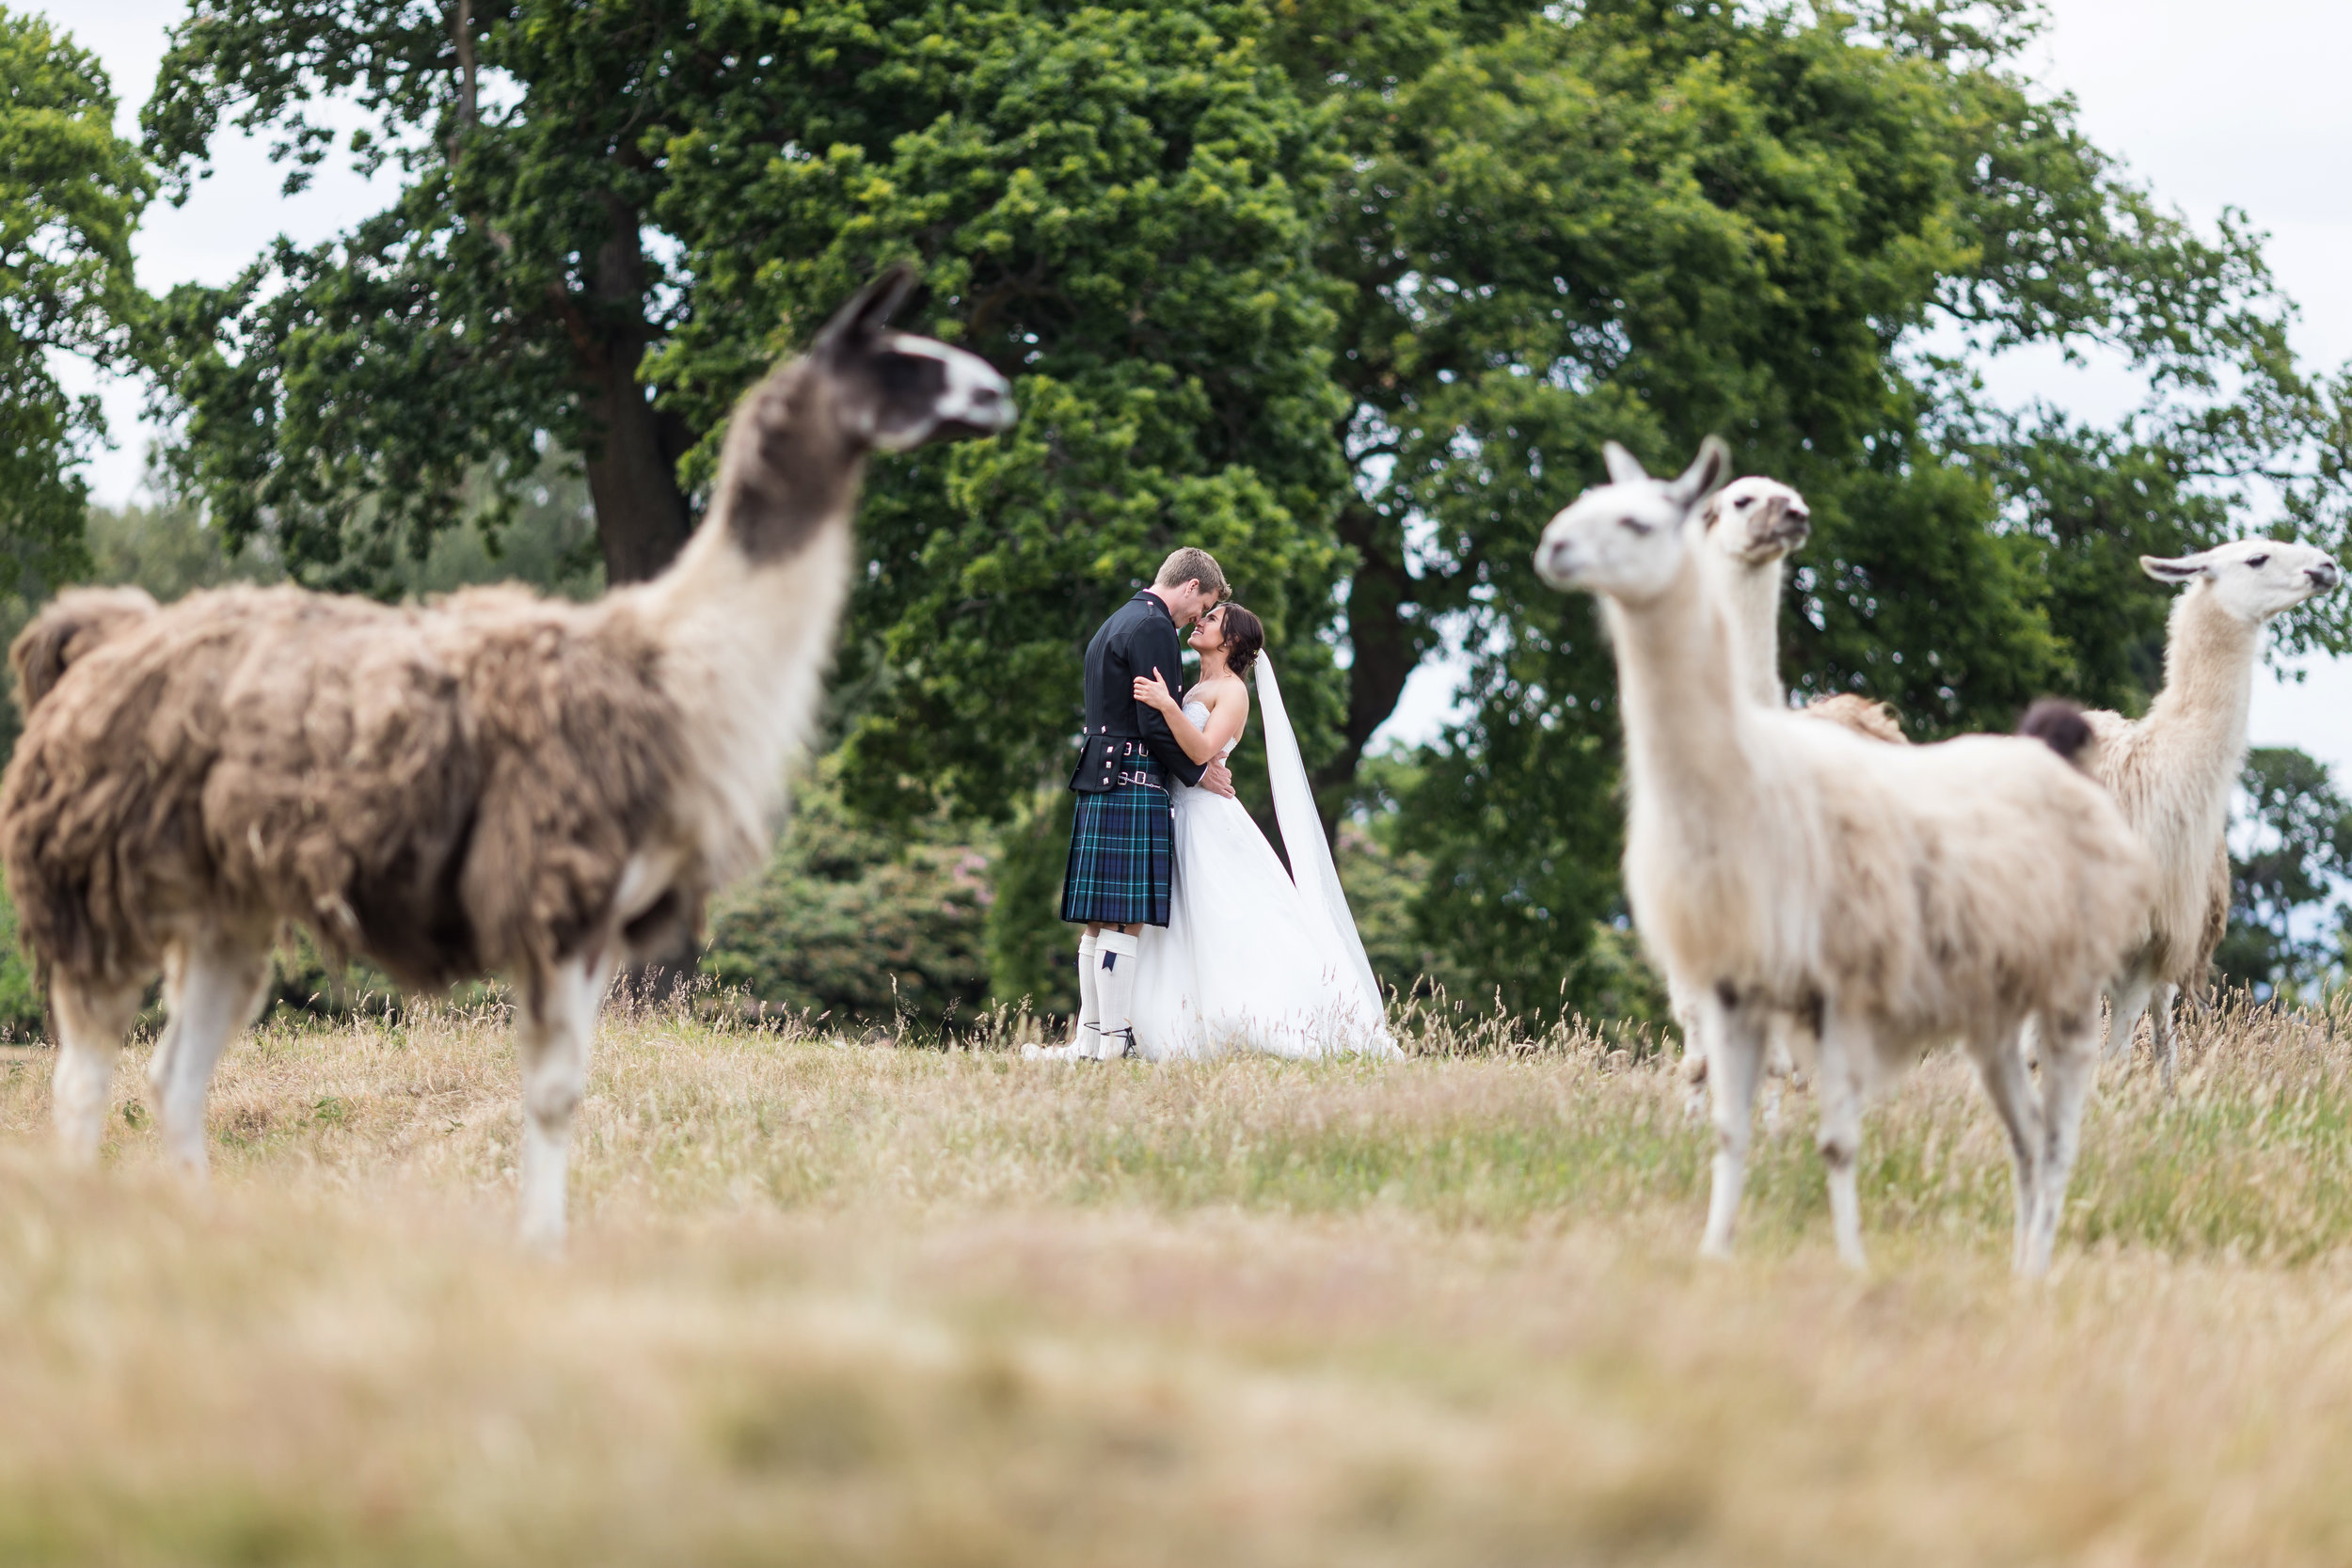 Llama photograph, Ryan White Photography (96).jpg